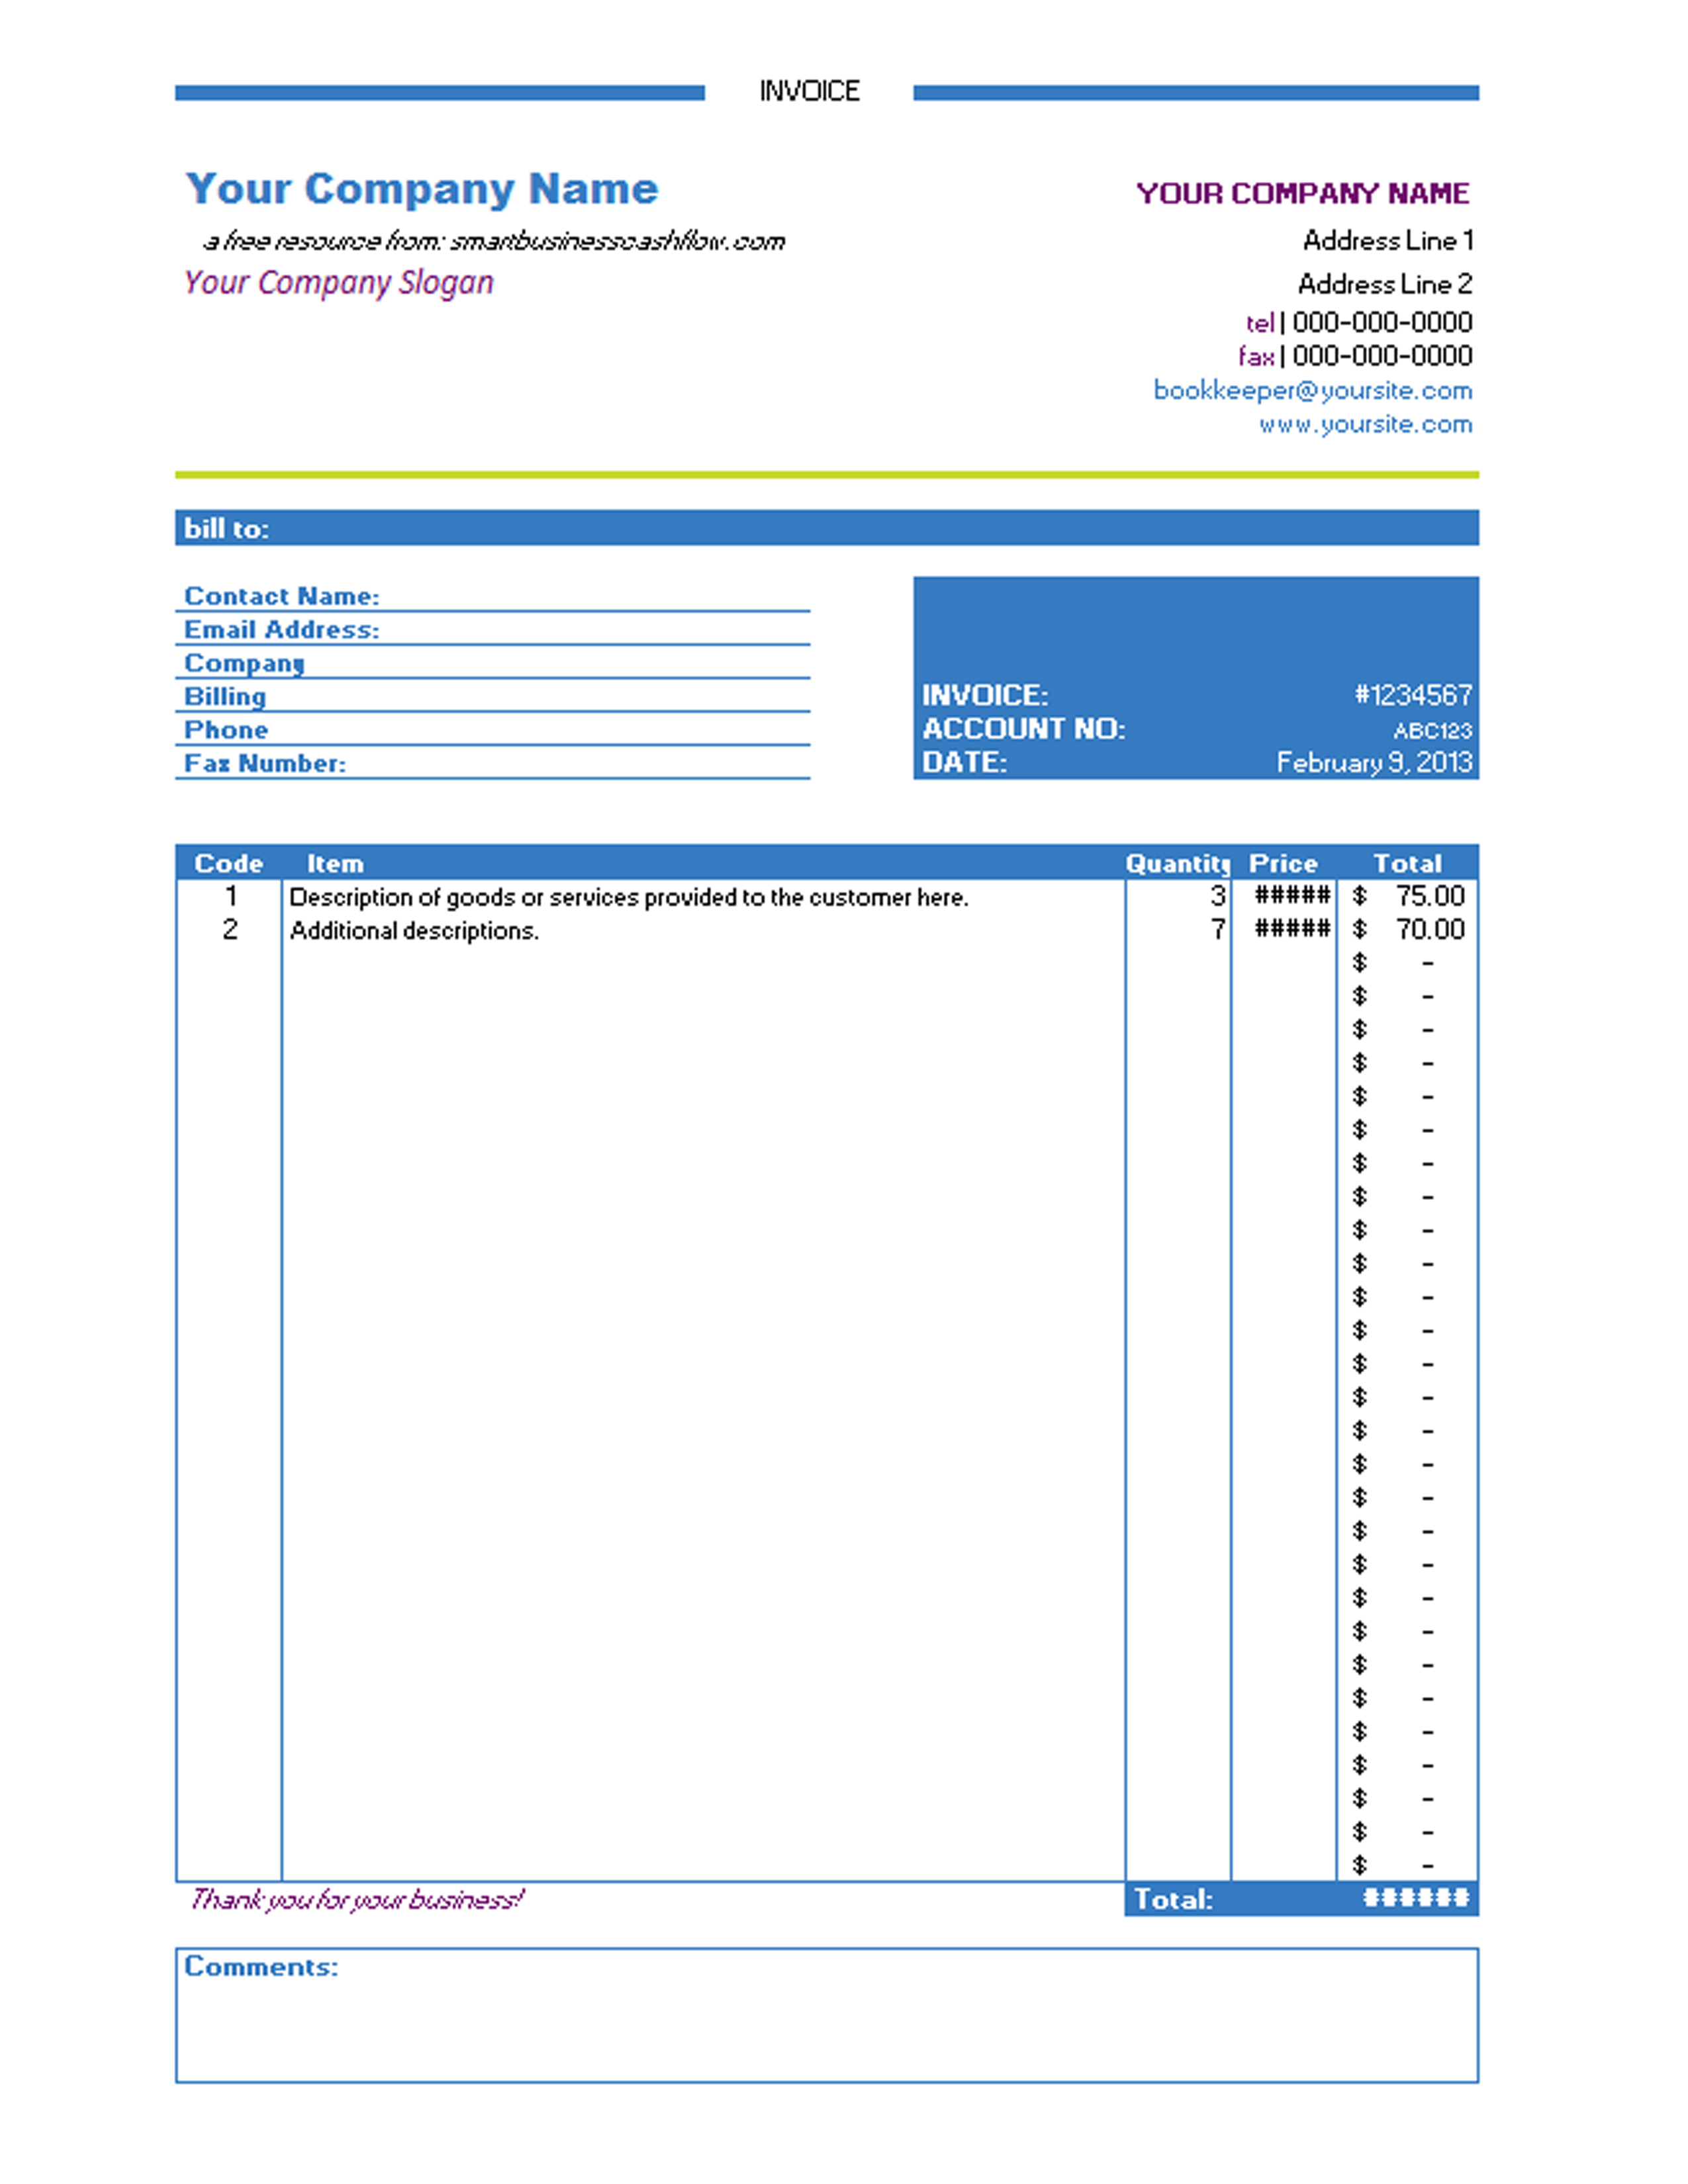 Invoice Template Excel 2010